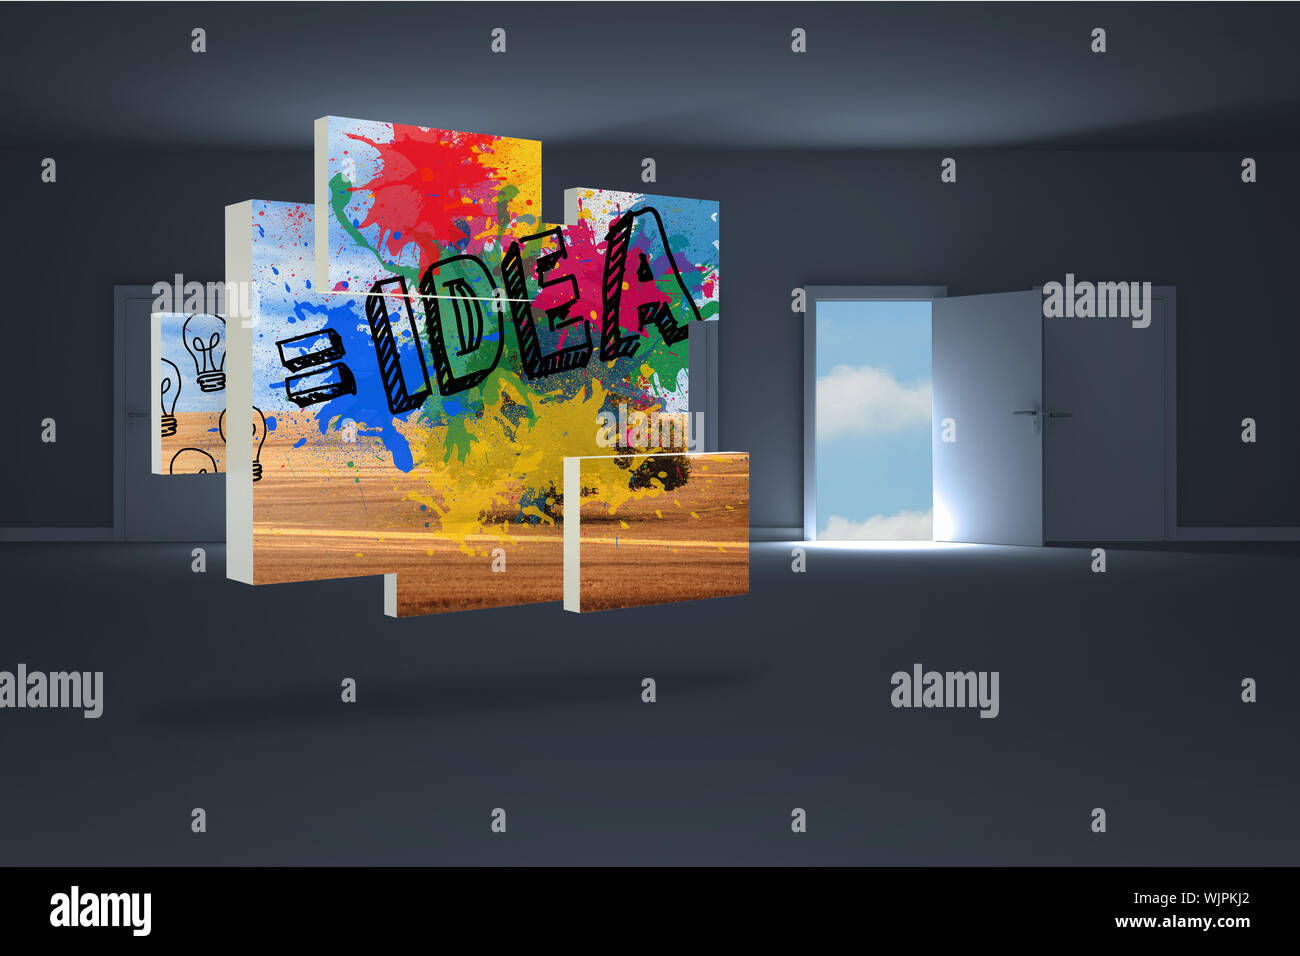 Idea on abstract screen against doors opening in dark room to show sky Stock Photo